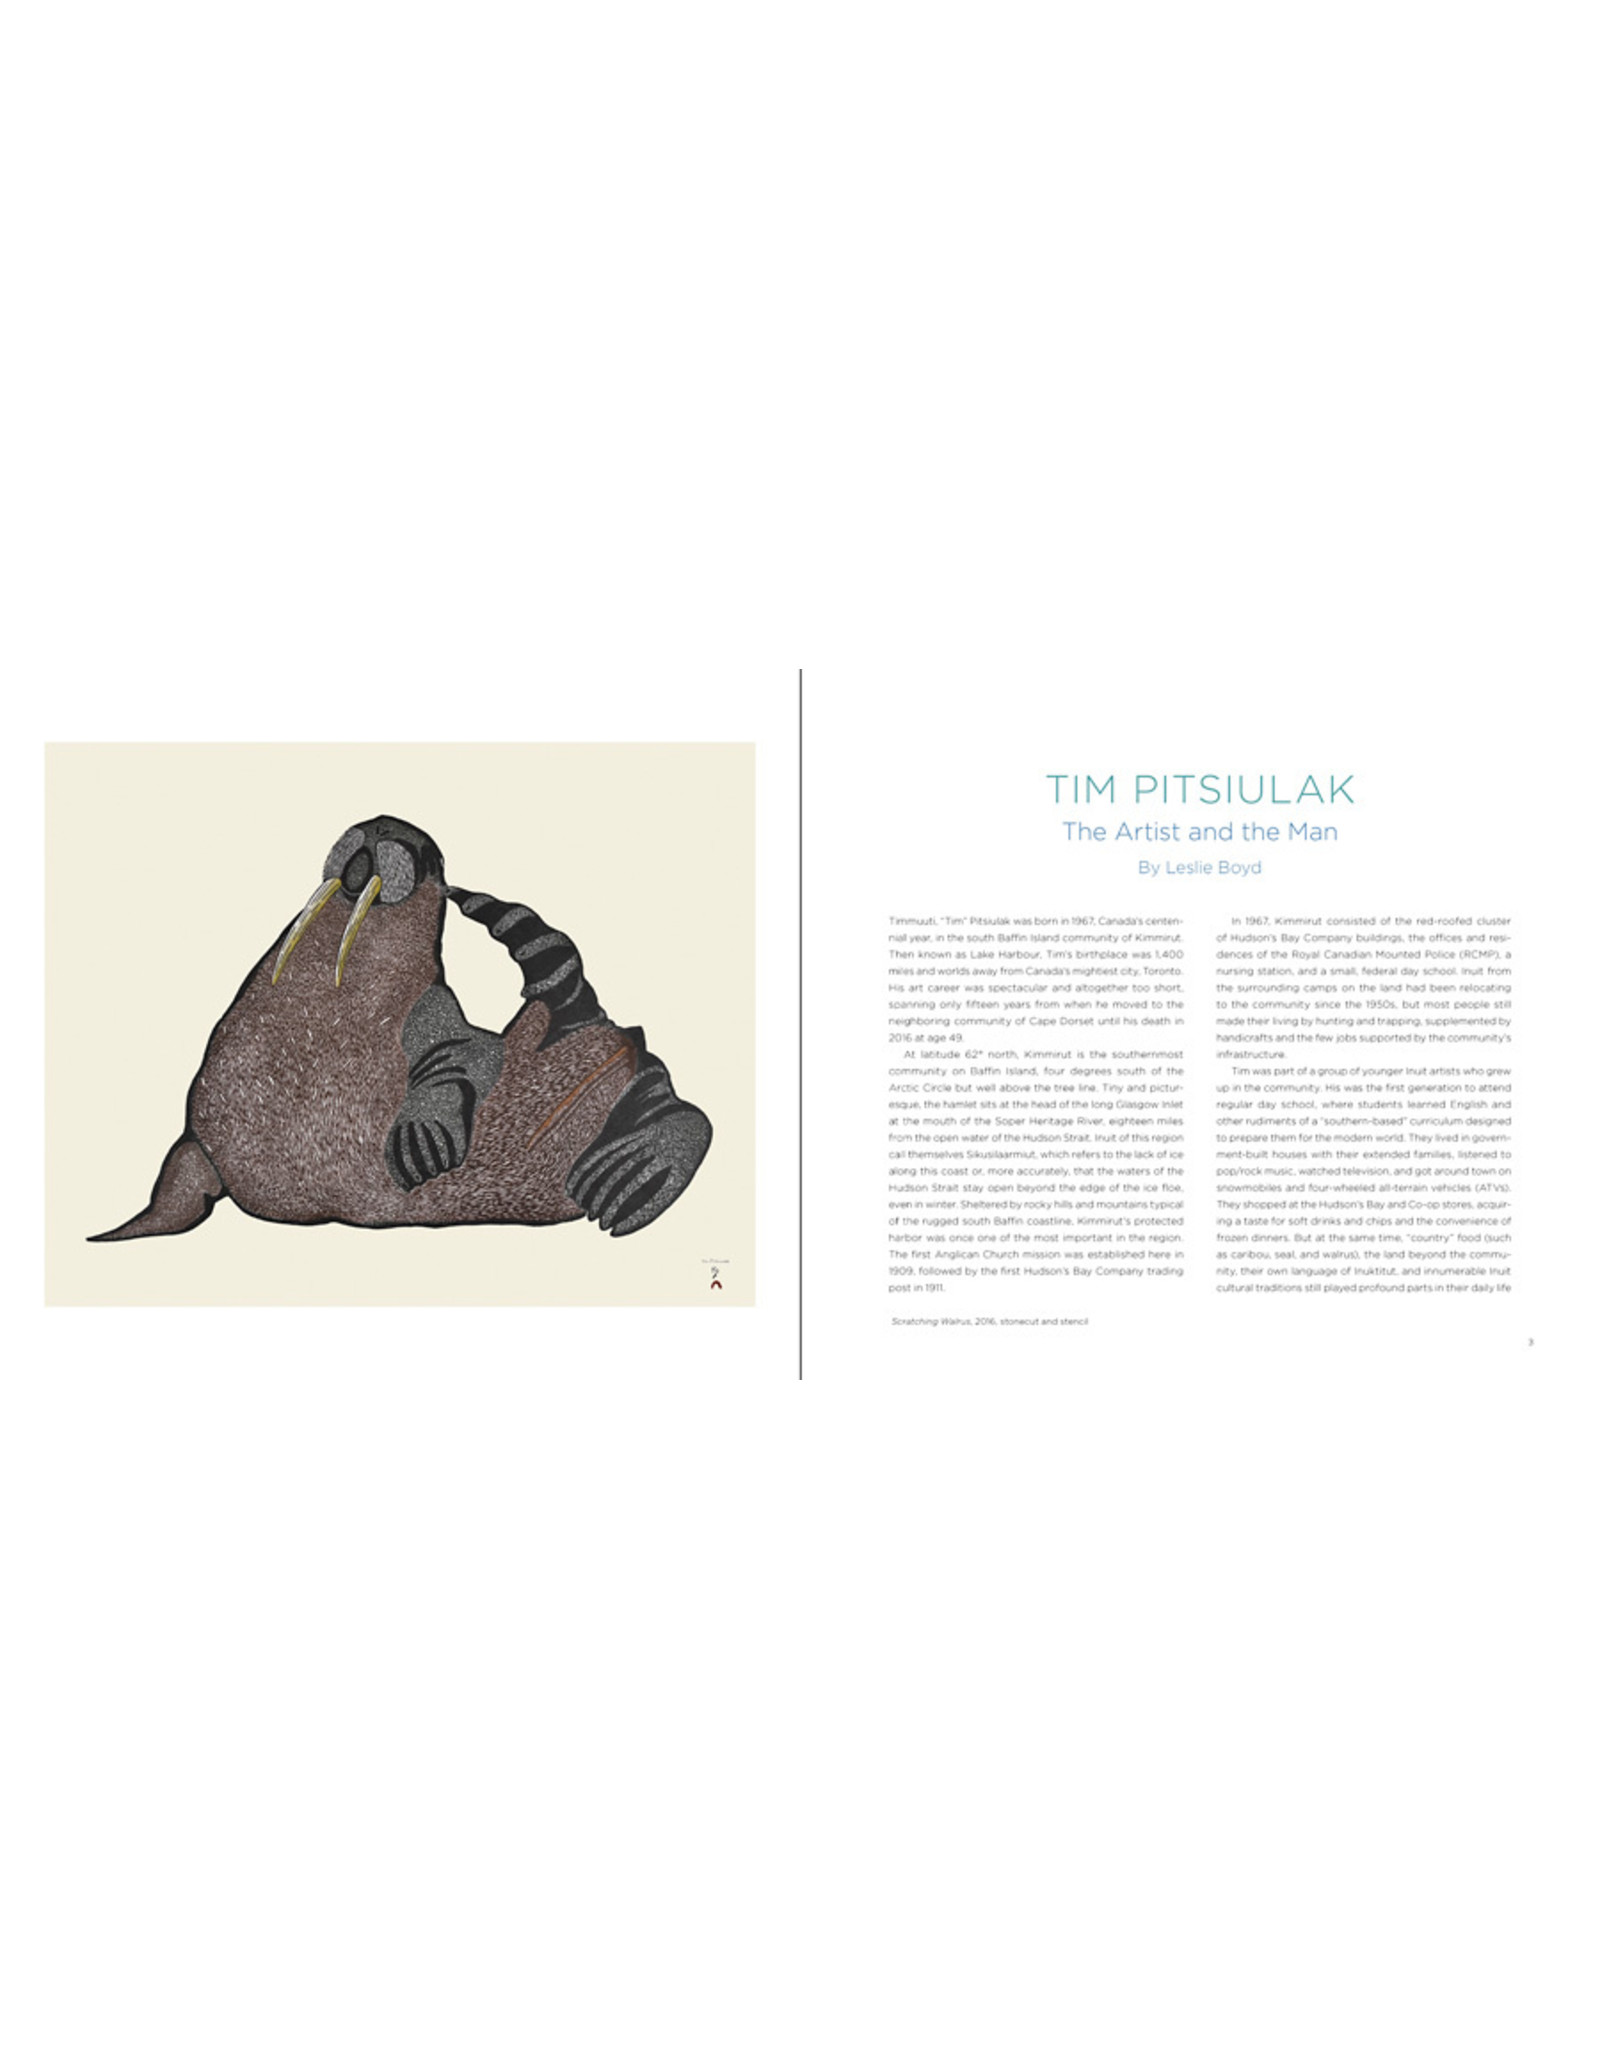 Cape Dorset Tim Pitsiulak: Drawings and prints from Cape Dorset